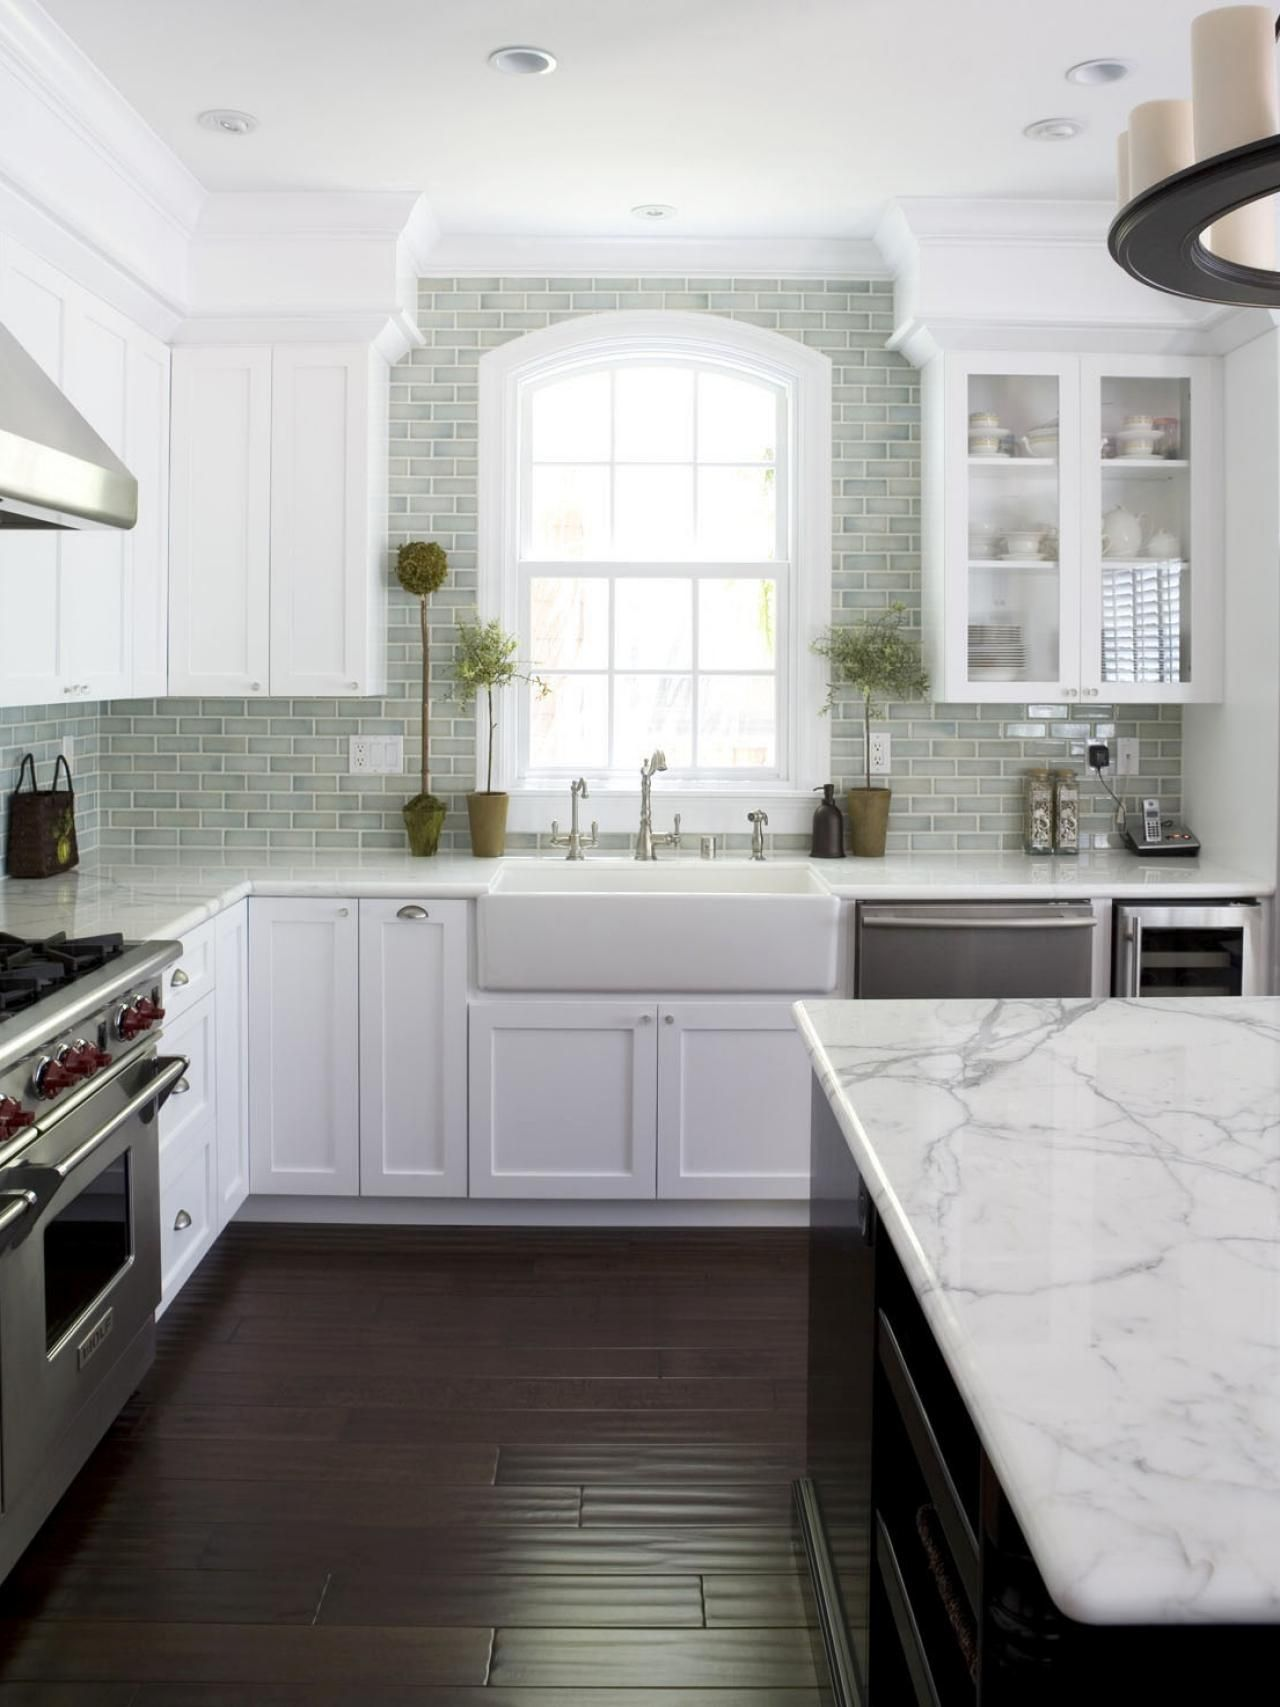 Beau Favorite White Kitchen Ideas U0026 Design With Cabinets